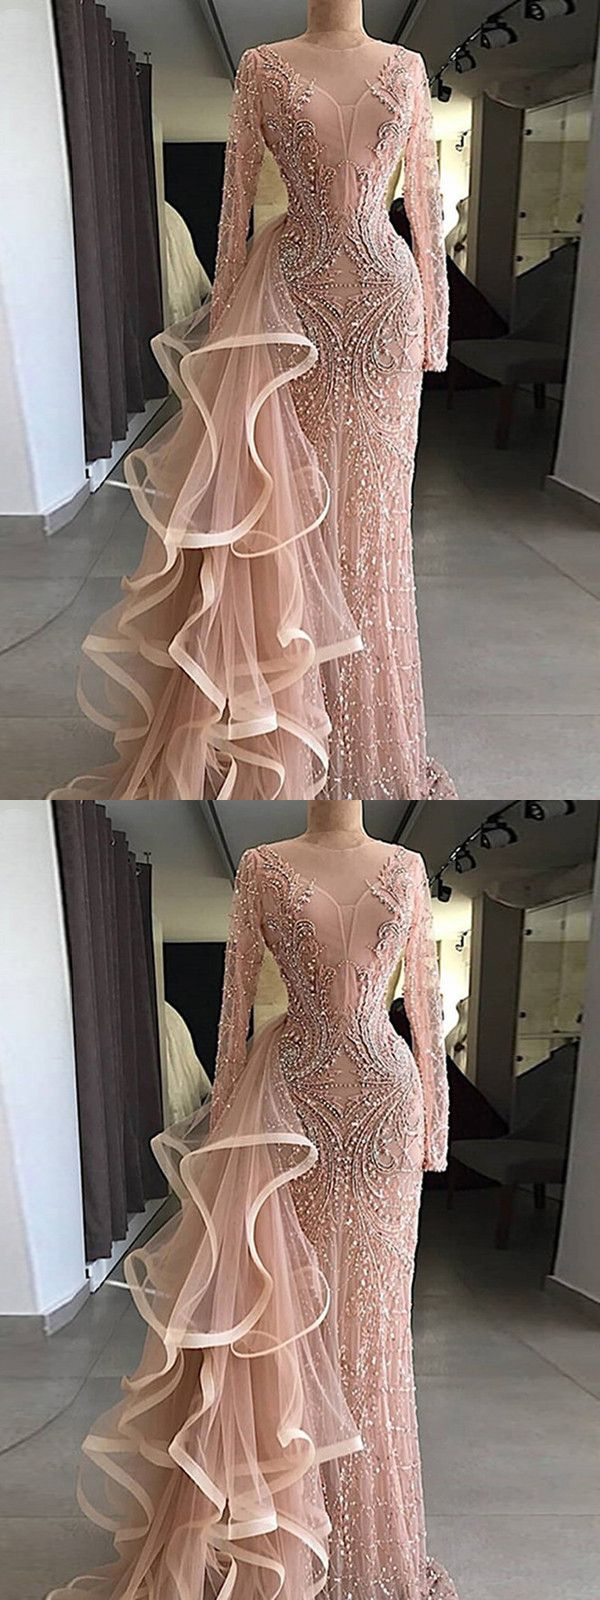 Chic pink prom dress sheath long sleeve prom dress vb in